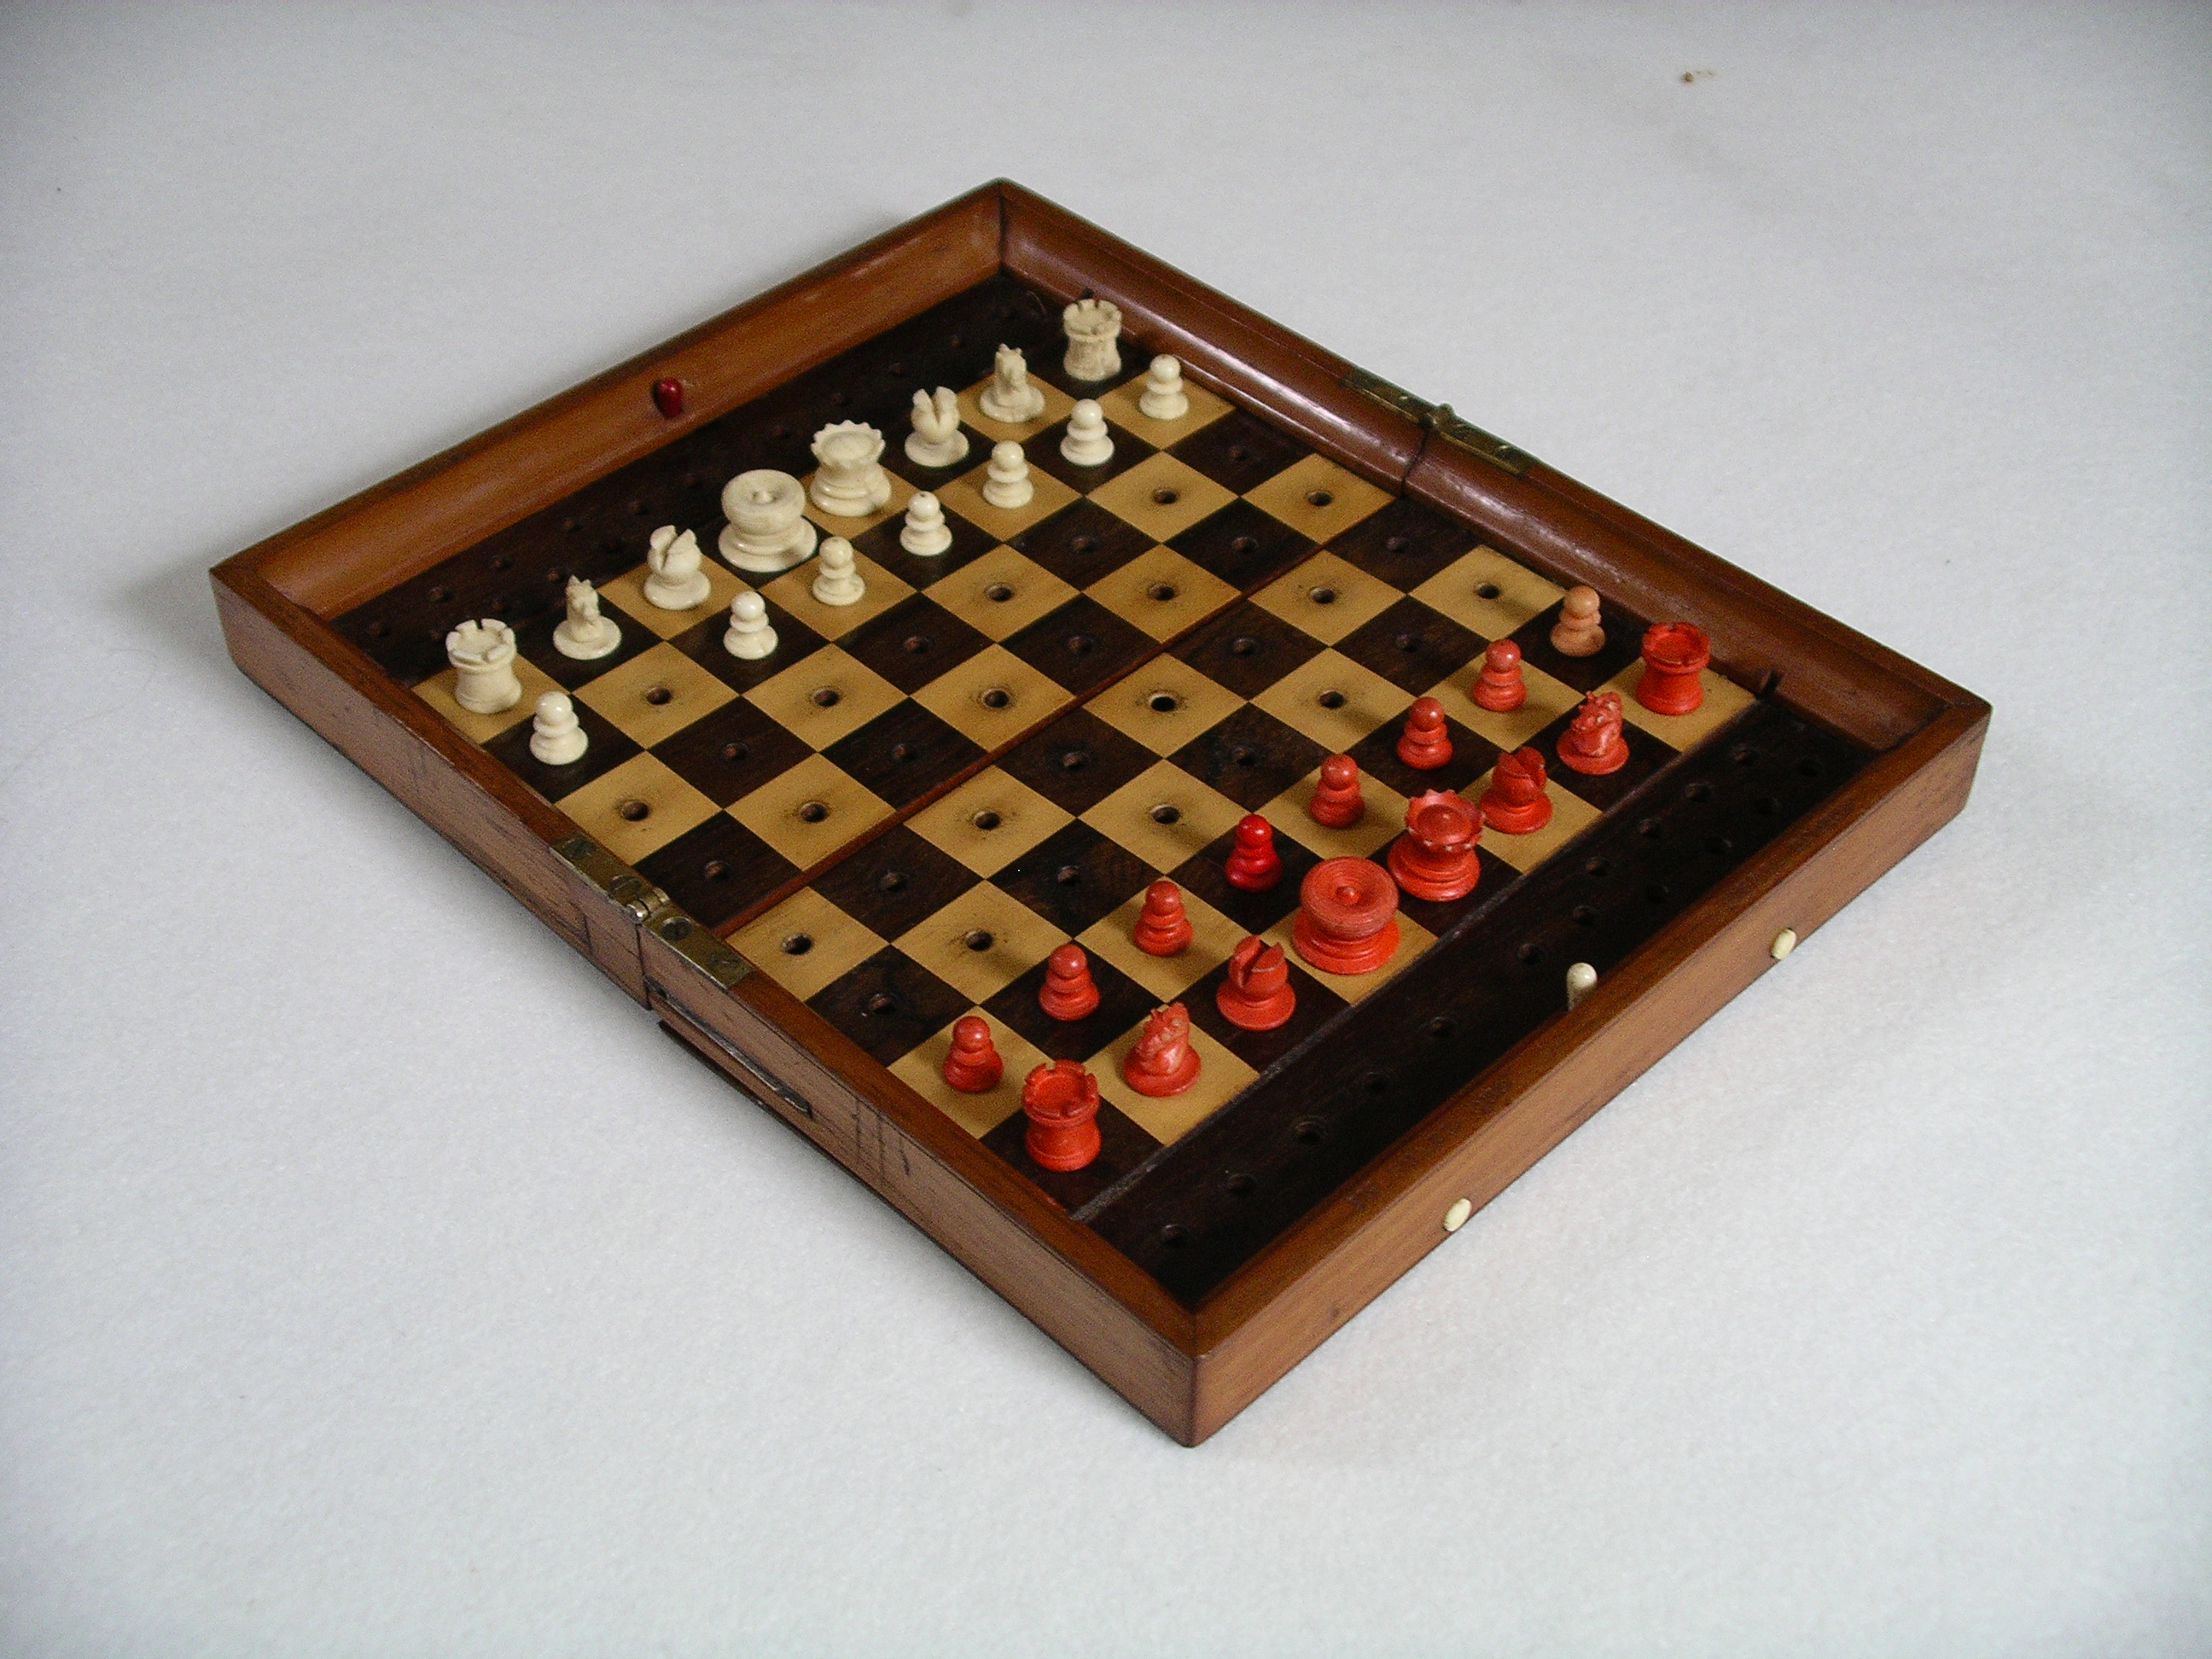 File jaques london antique portable chess set oblique jpg wikimedia commons - Collectible chess sets ...